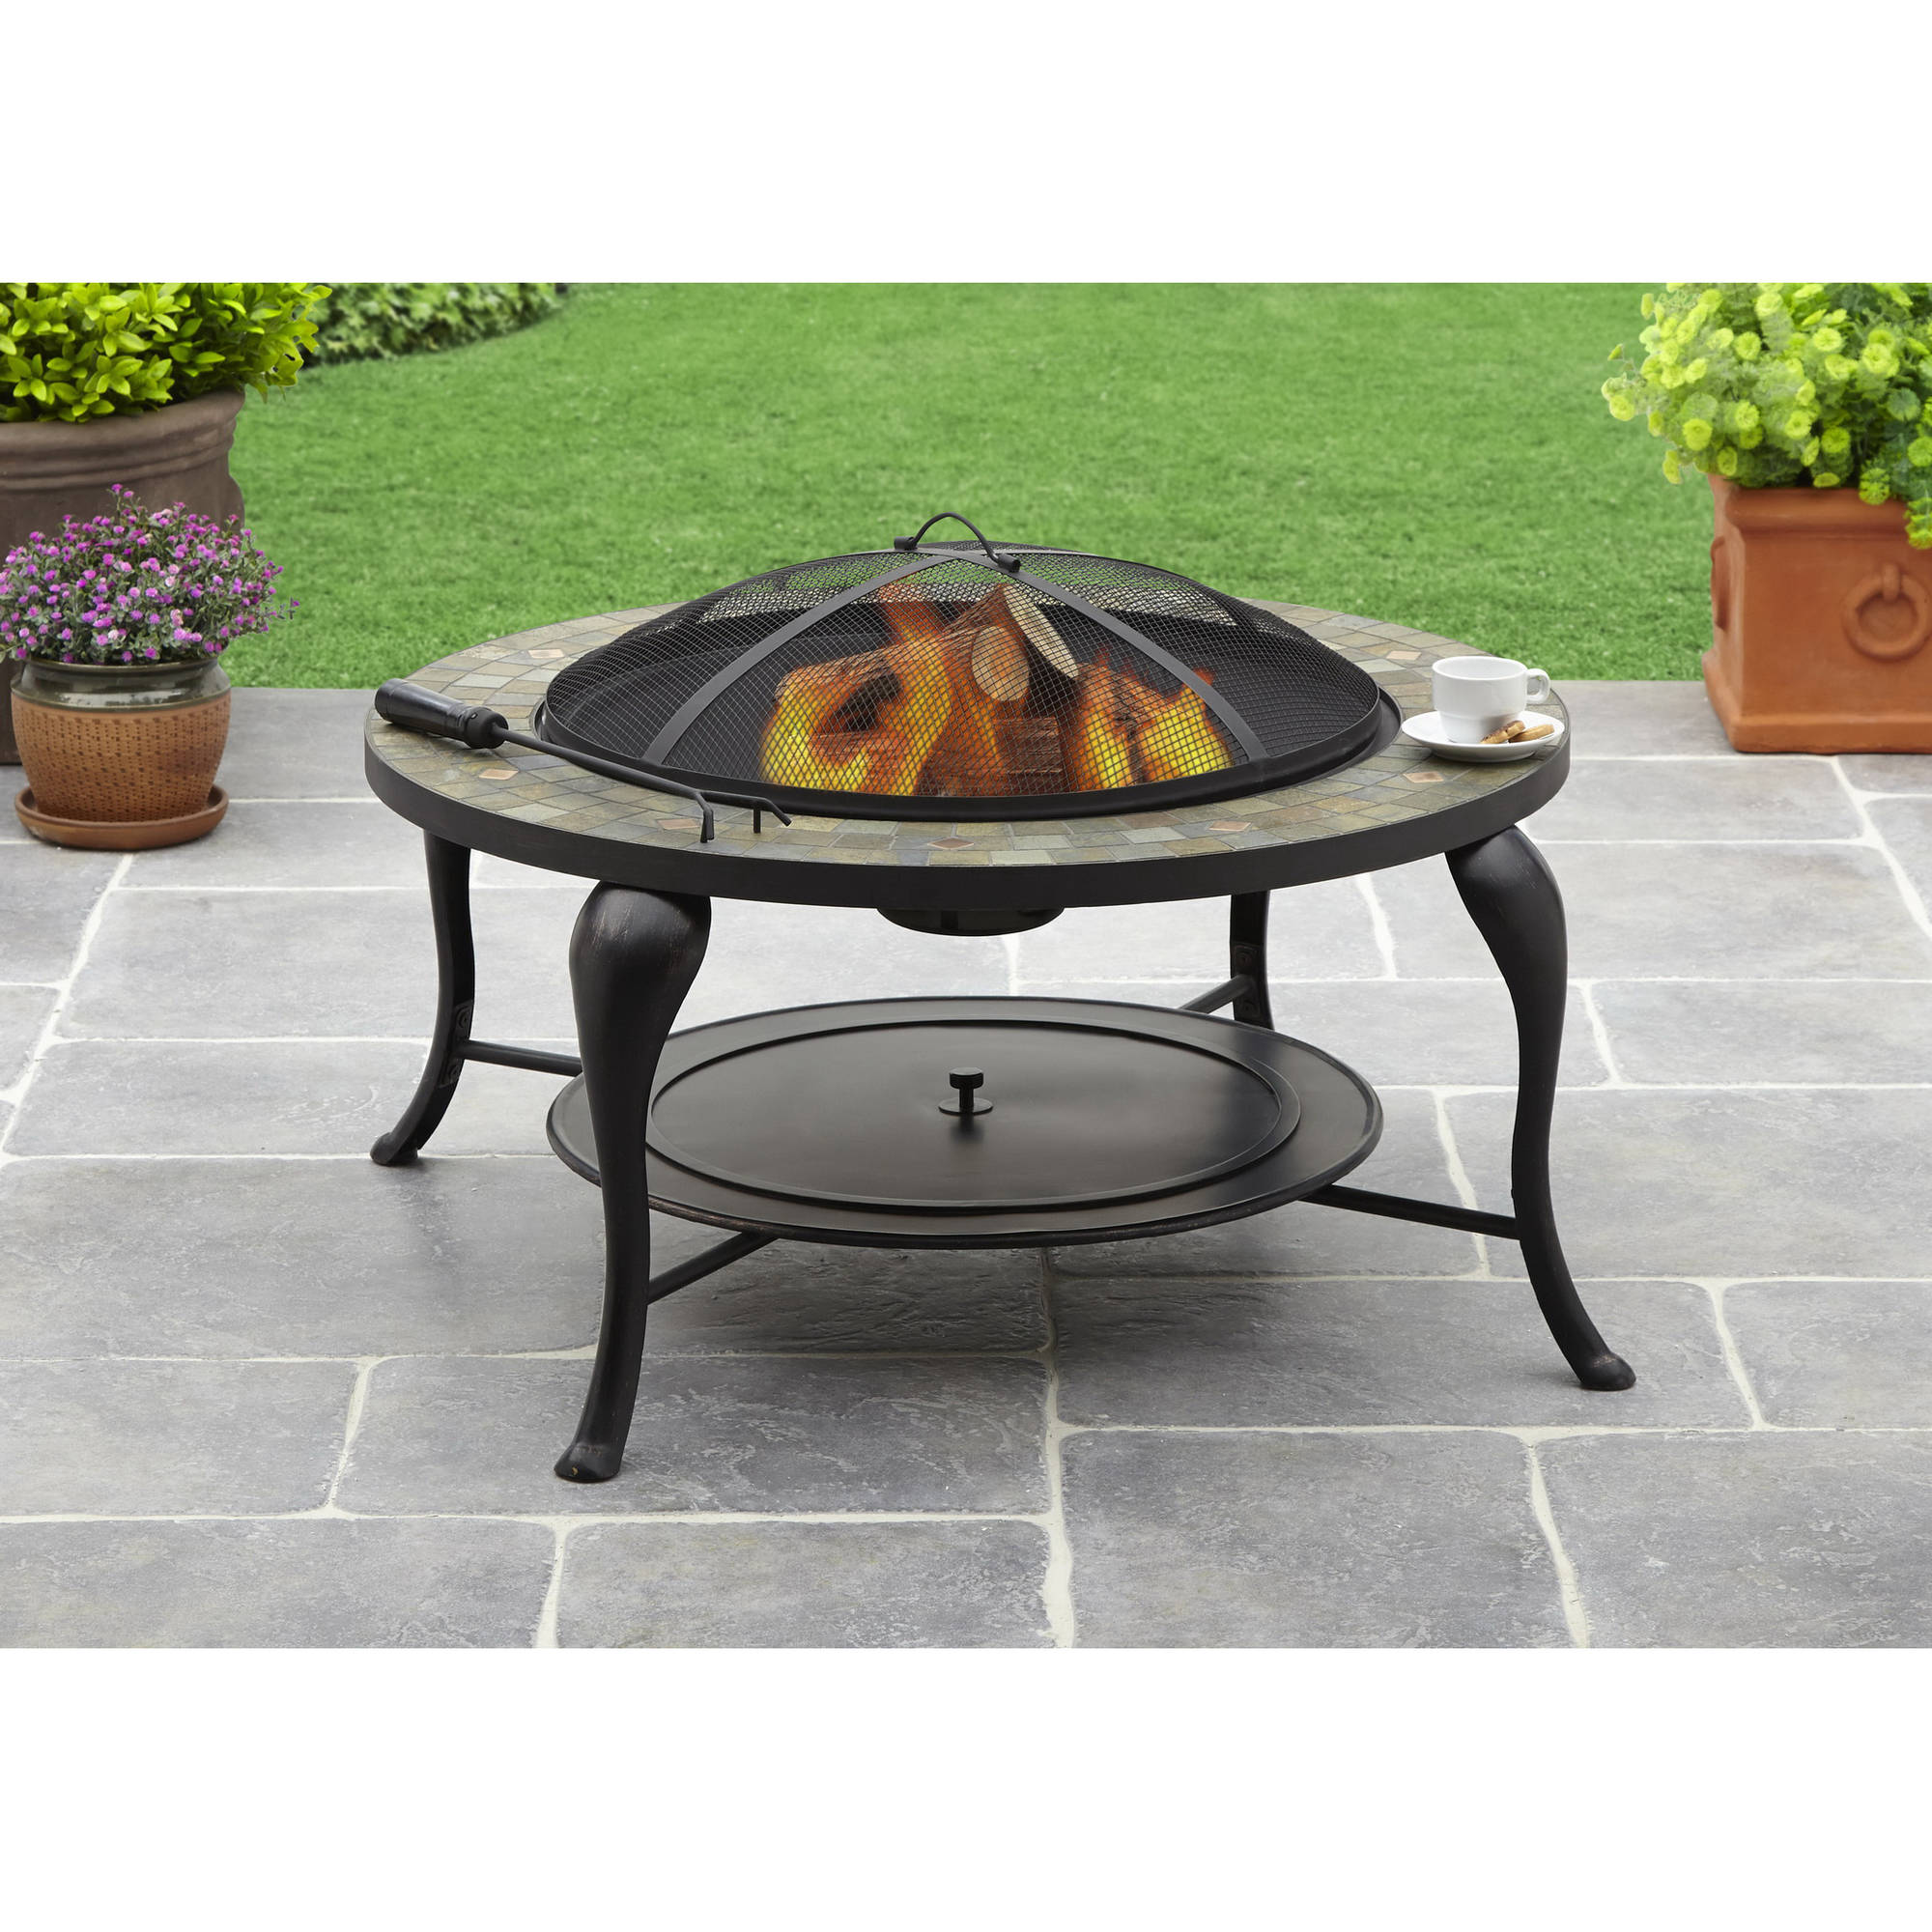 Premium Sunlight 5-piece Chat Set with Gas Fire Pit Table, Glass ...